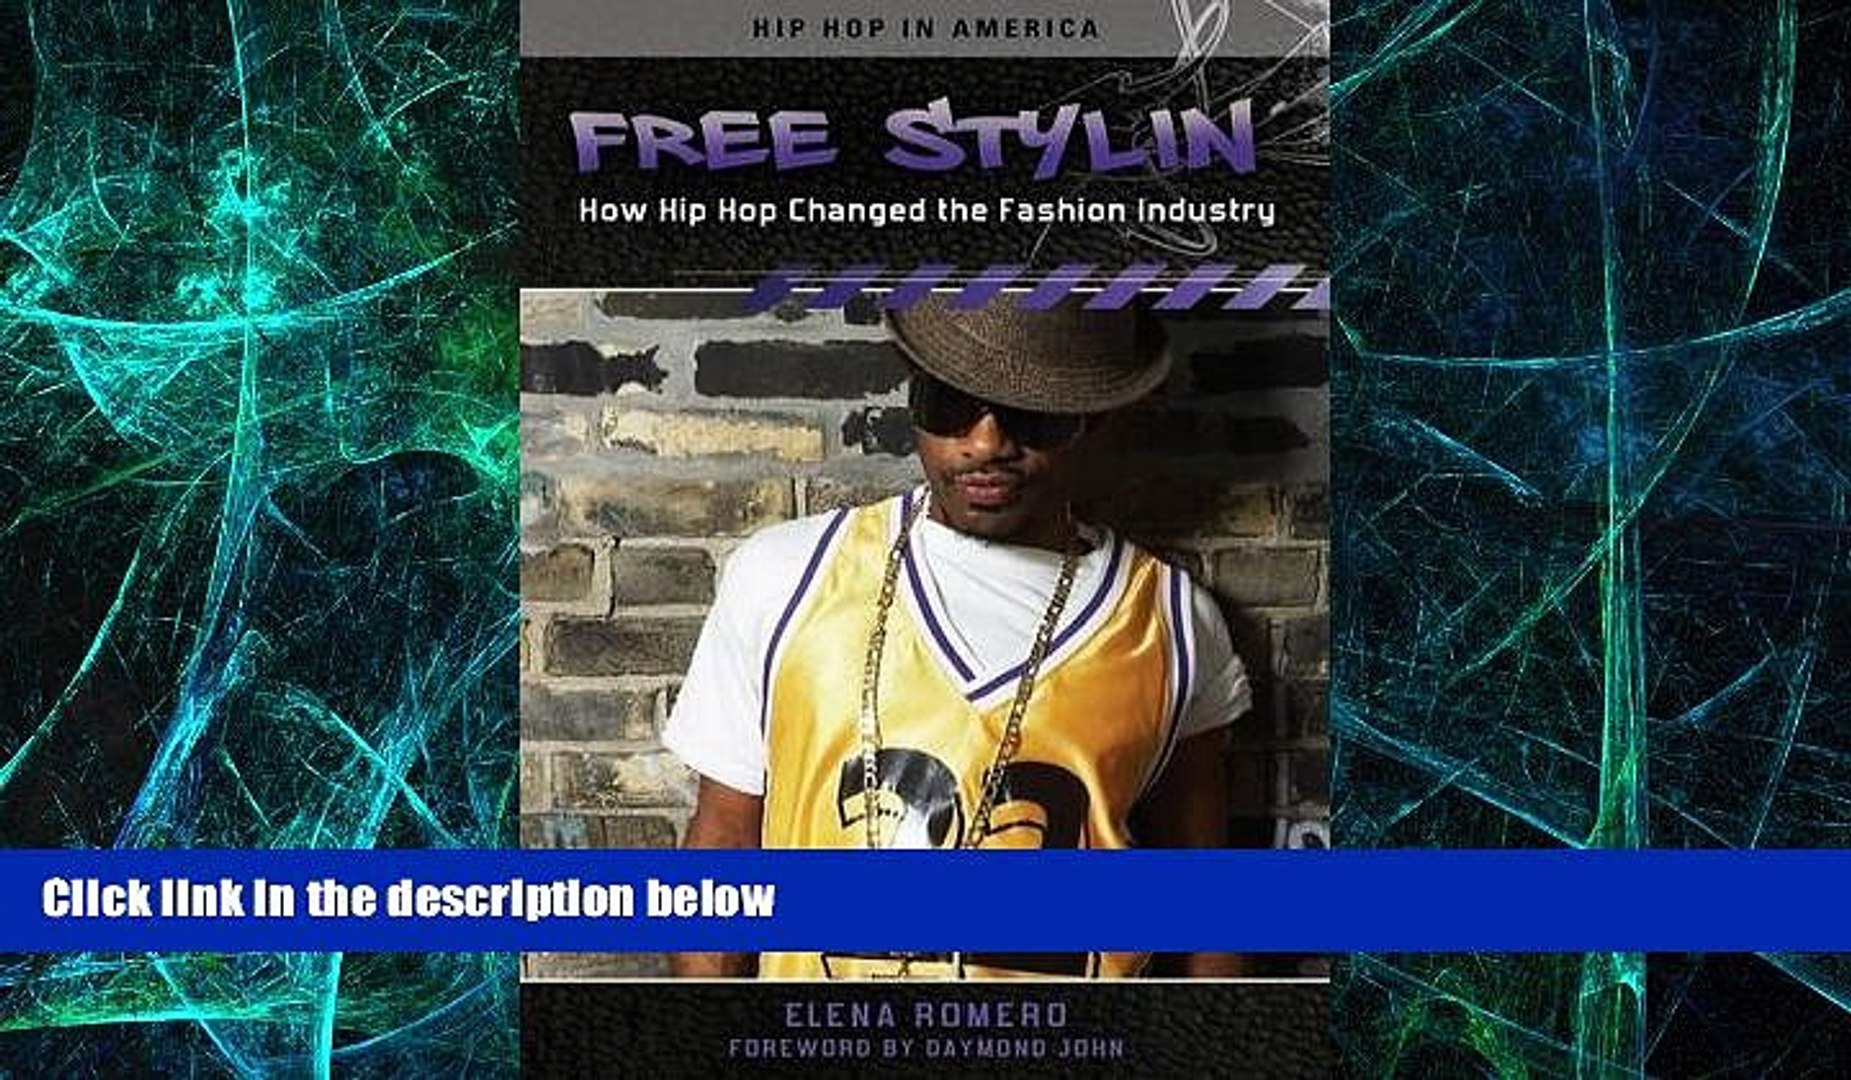 Big Deals  Free Stylin : How Hip Hop Changed the Fashion Industry (Hip Hop in America)  Best